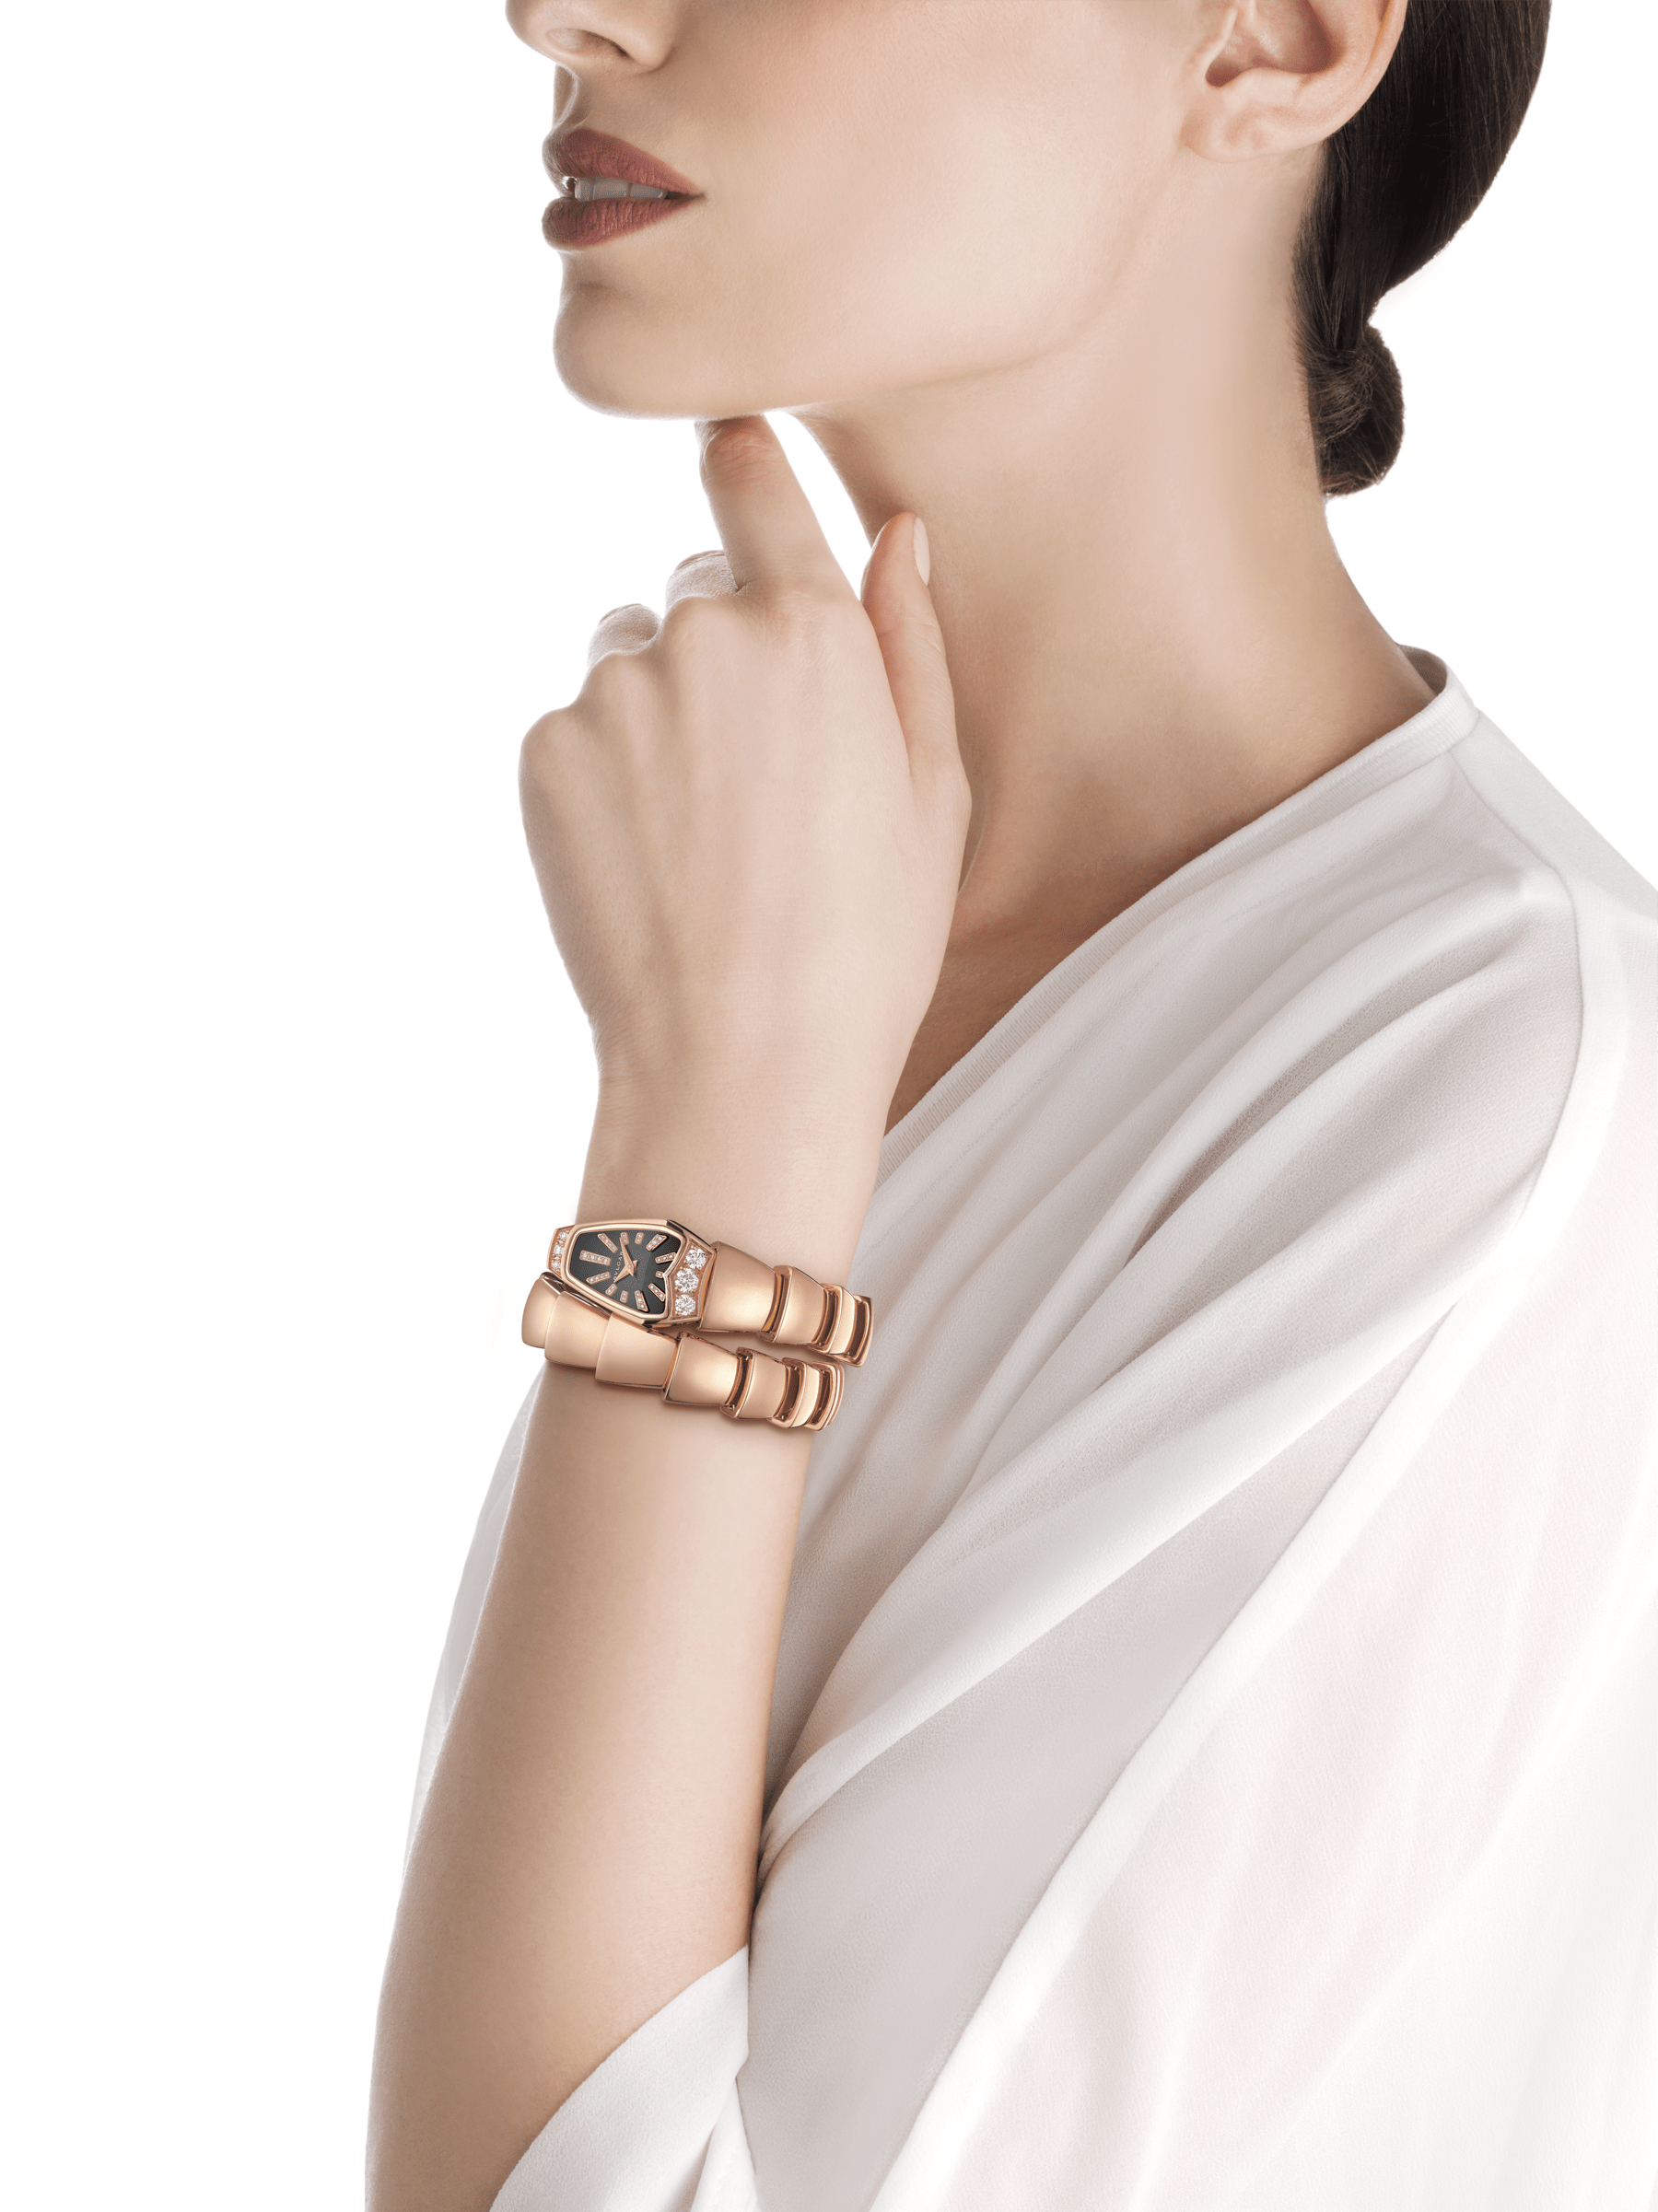 Serpenti Jewellery Watch with 18 kt rose gold case set with brilliant cut diamonds, black sapphire crystal dial, diamond indexes and 18 kt rose gold single spiral bracelet. 101788 image 3